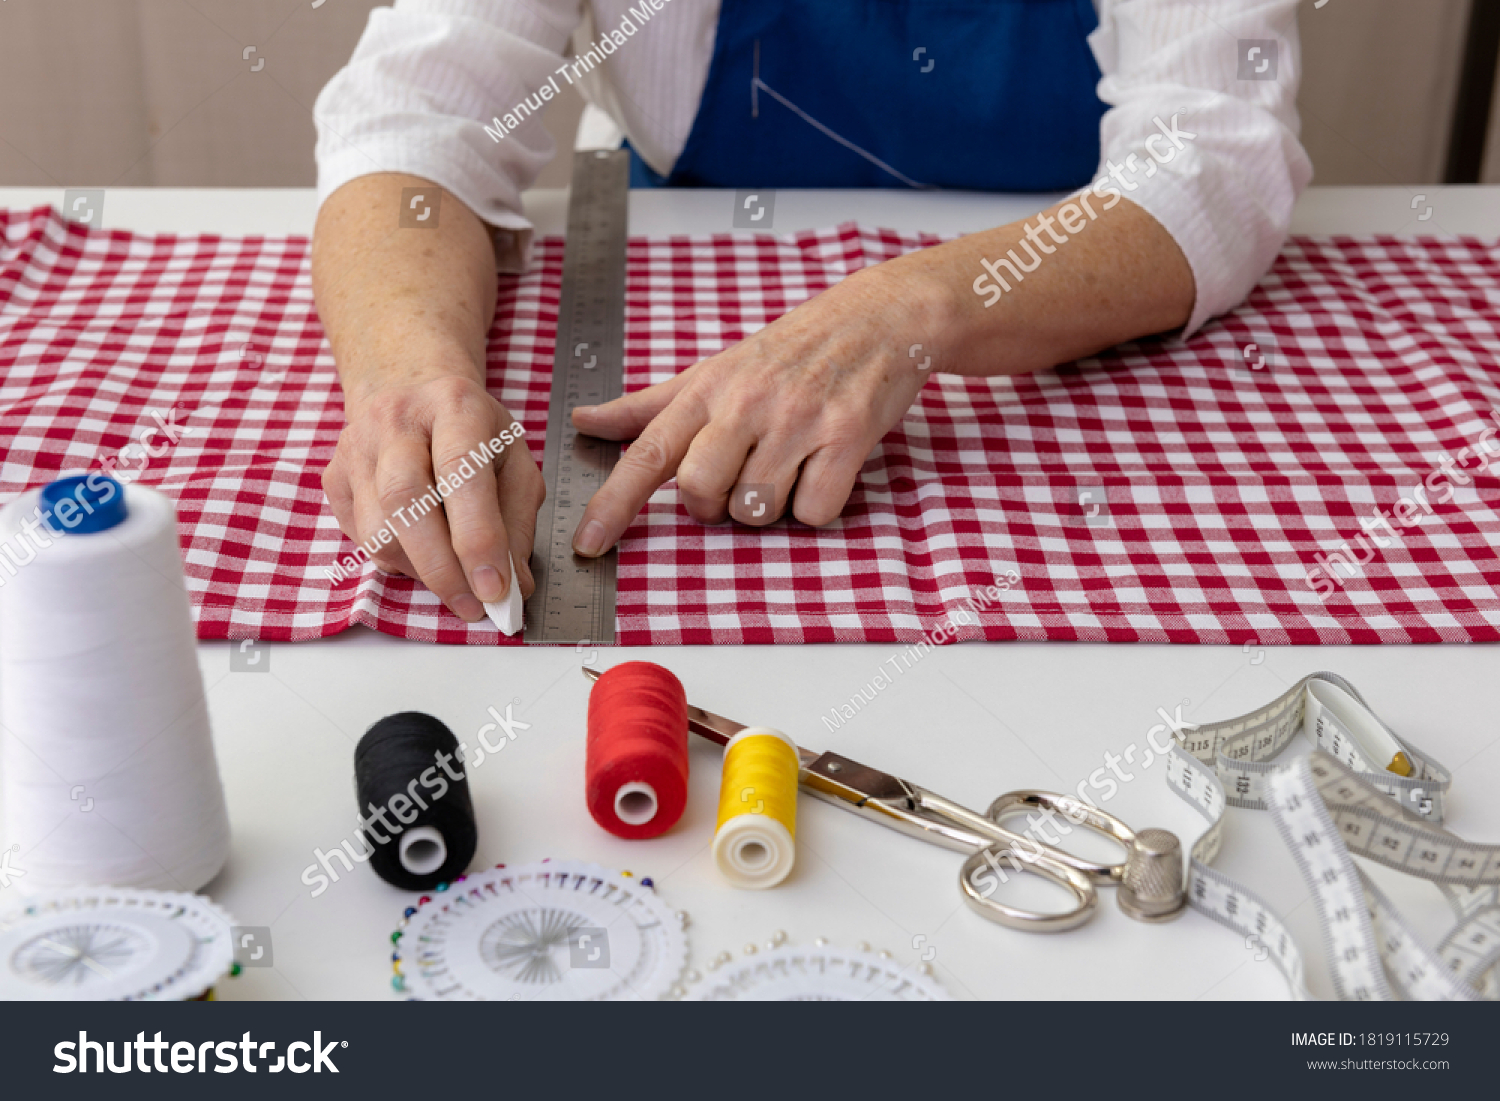 stock-photo-seamstress-marks-fabric-with